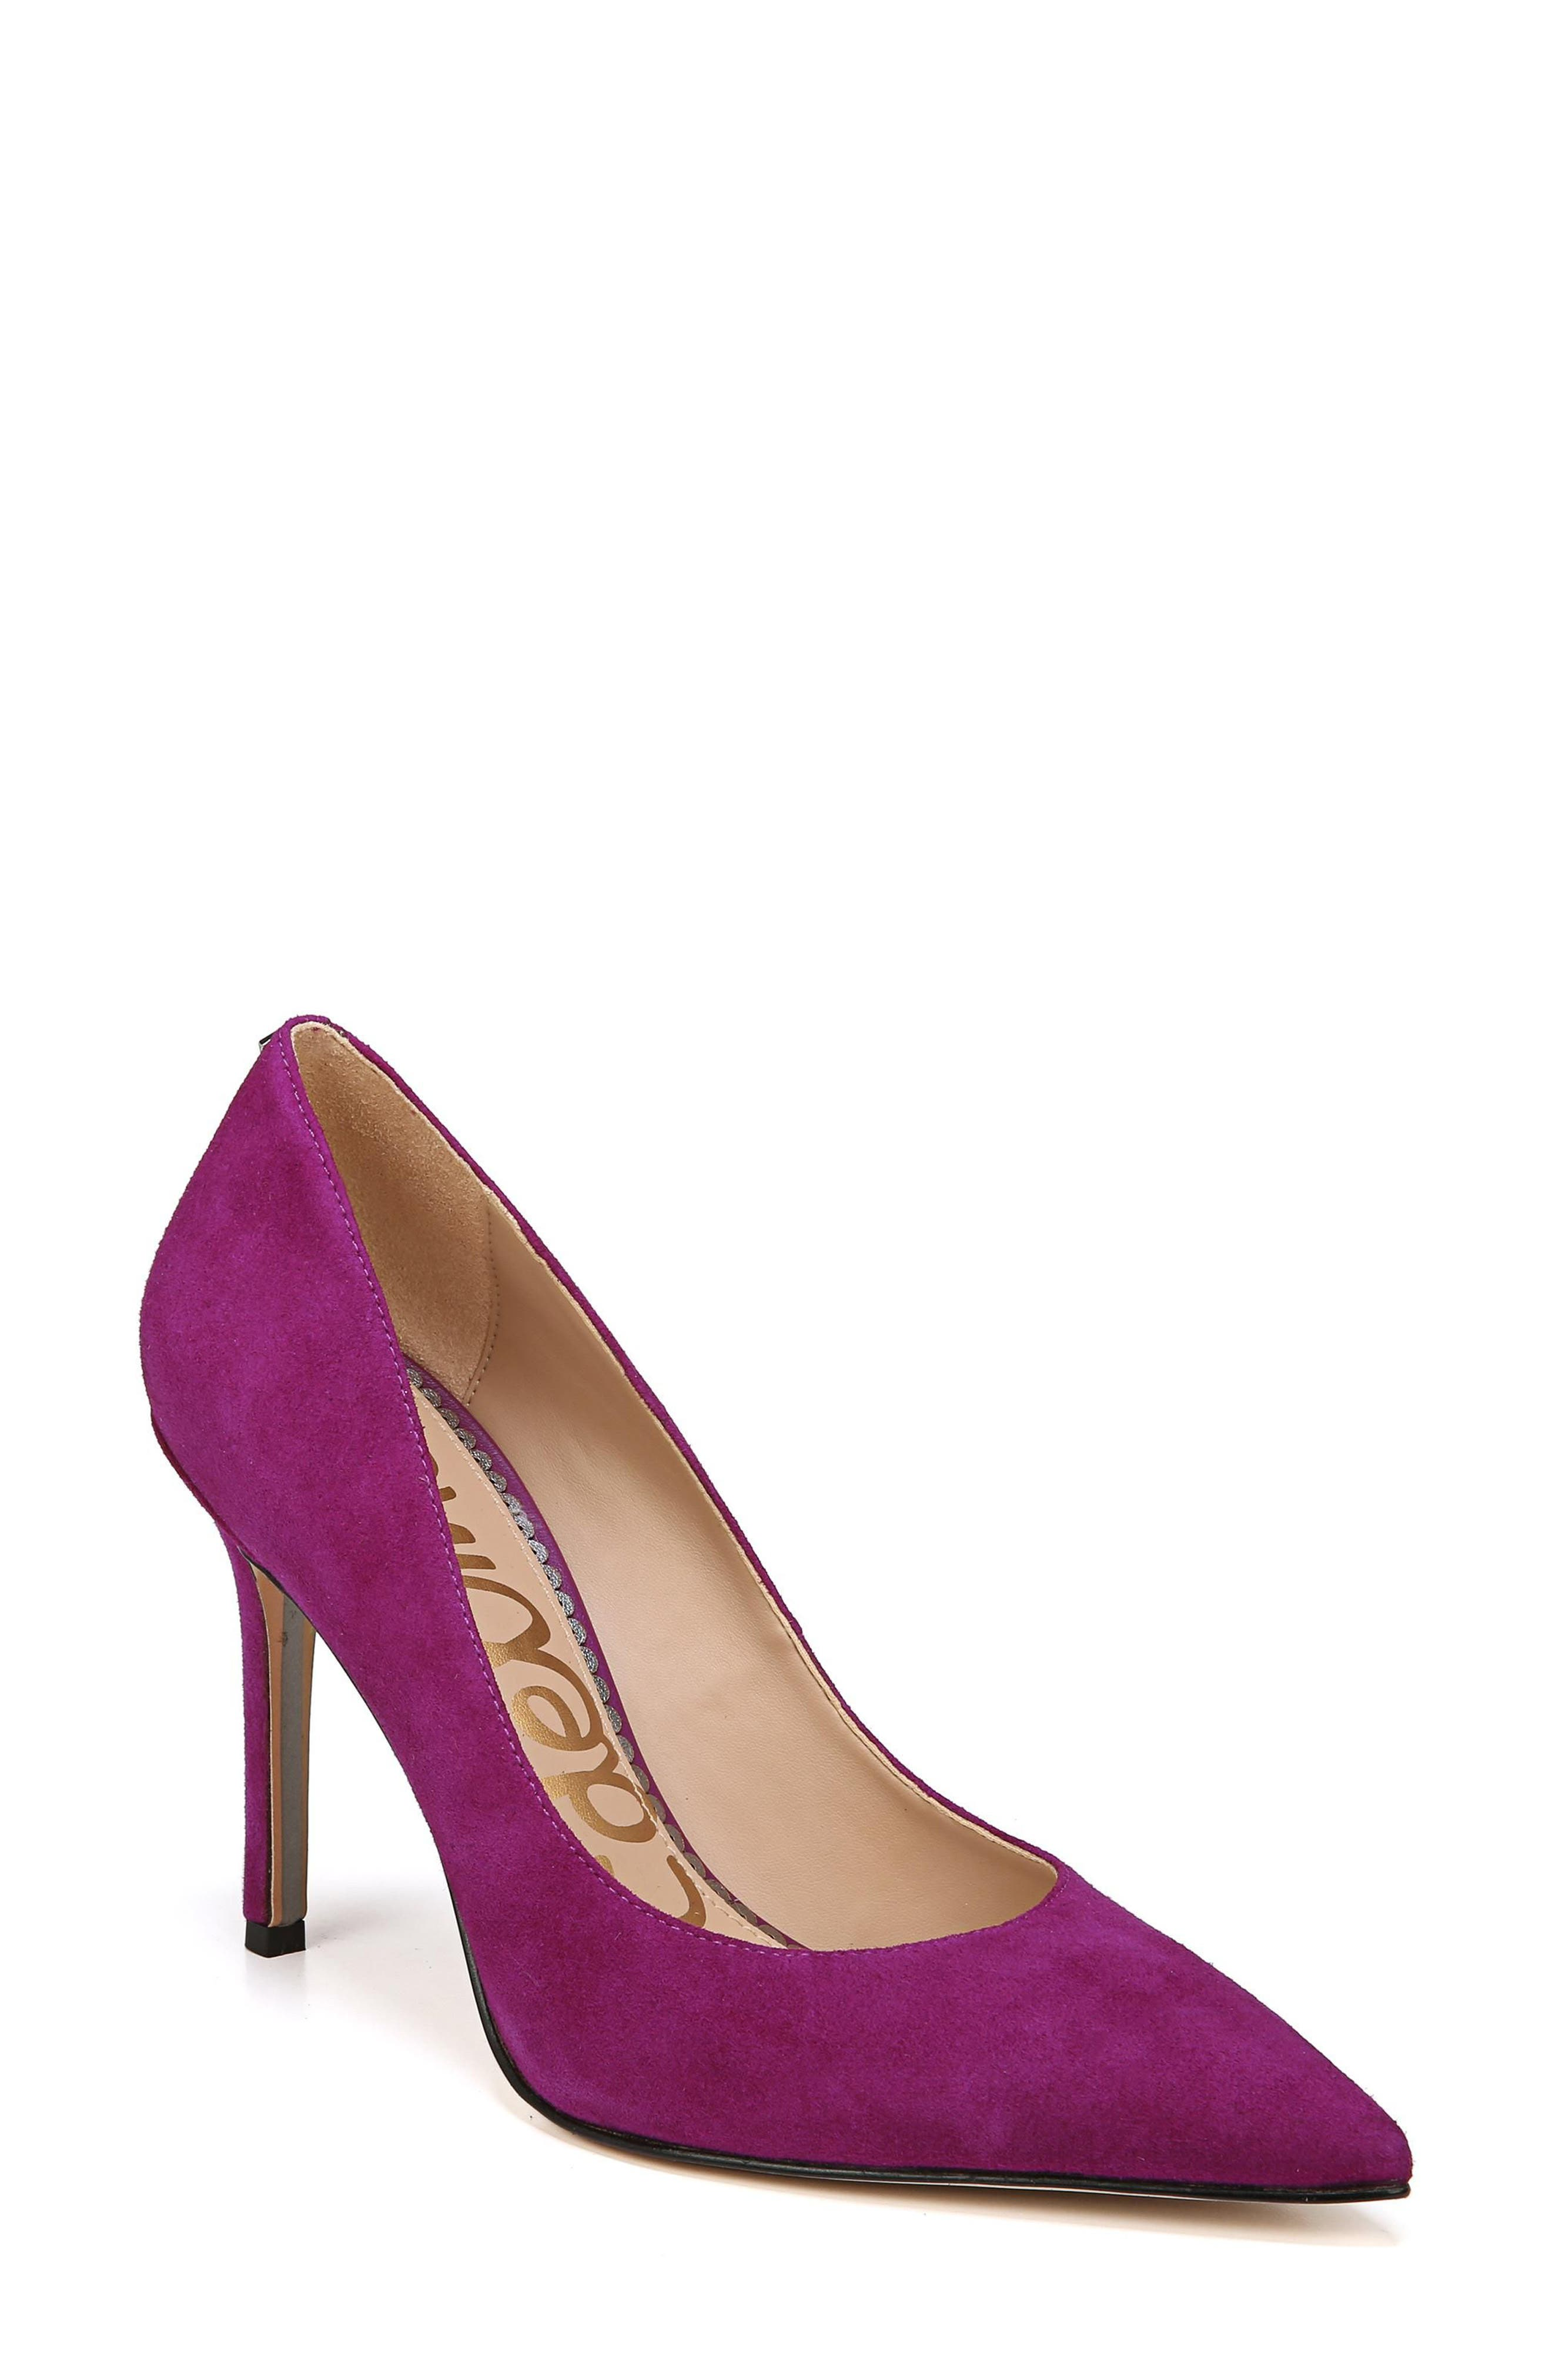 Hazel Pointy Toe Pump,                         Main,                         color, Purple Plum Suede